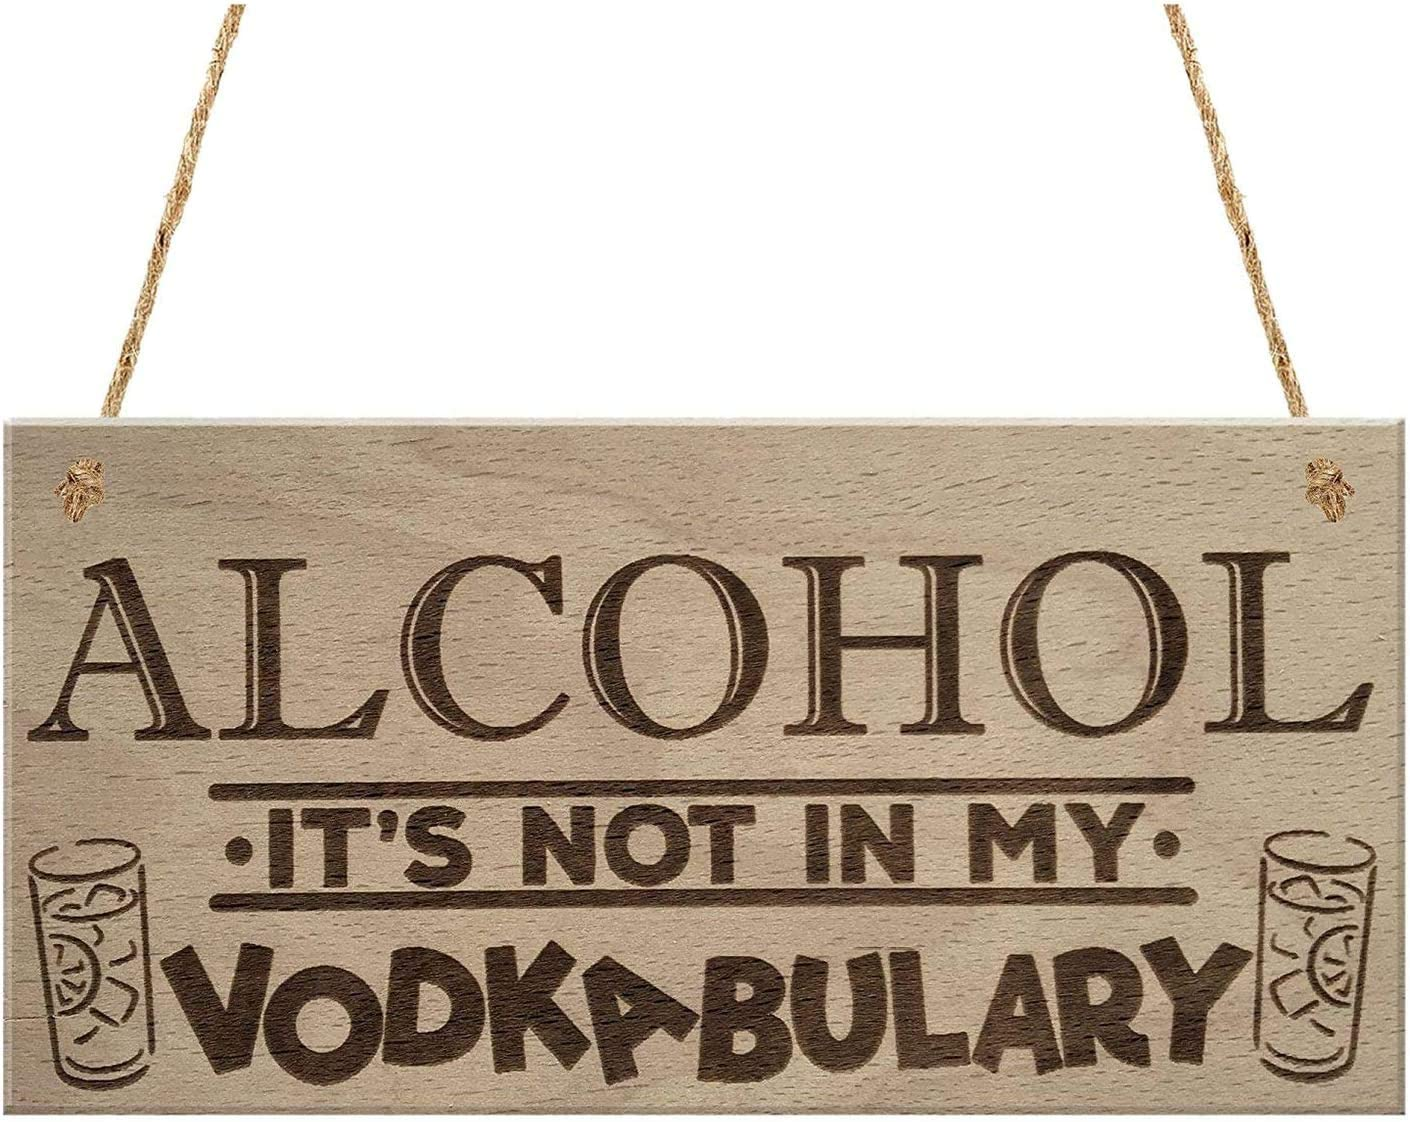 MAIYUAN Alcohol It's Not in My Vodkabulary Funny Drink Vodka Friendship Gift Hanging Wood Plaque Joke Sign(UG1297)